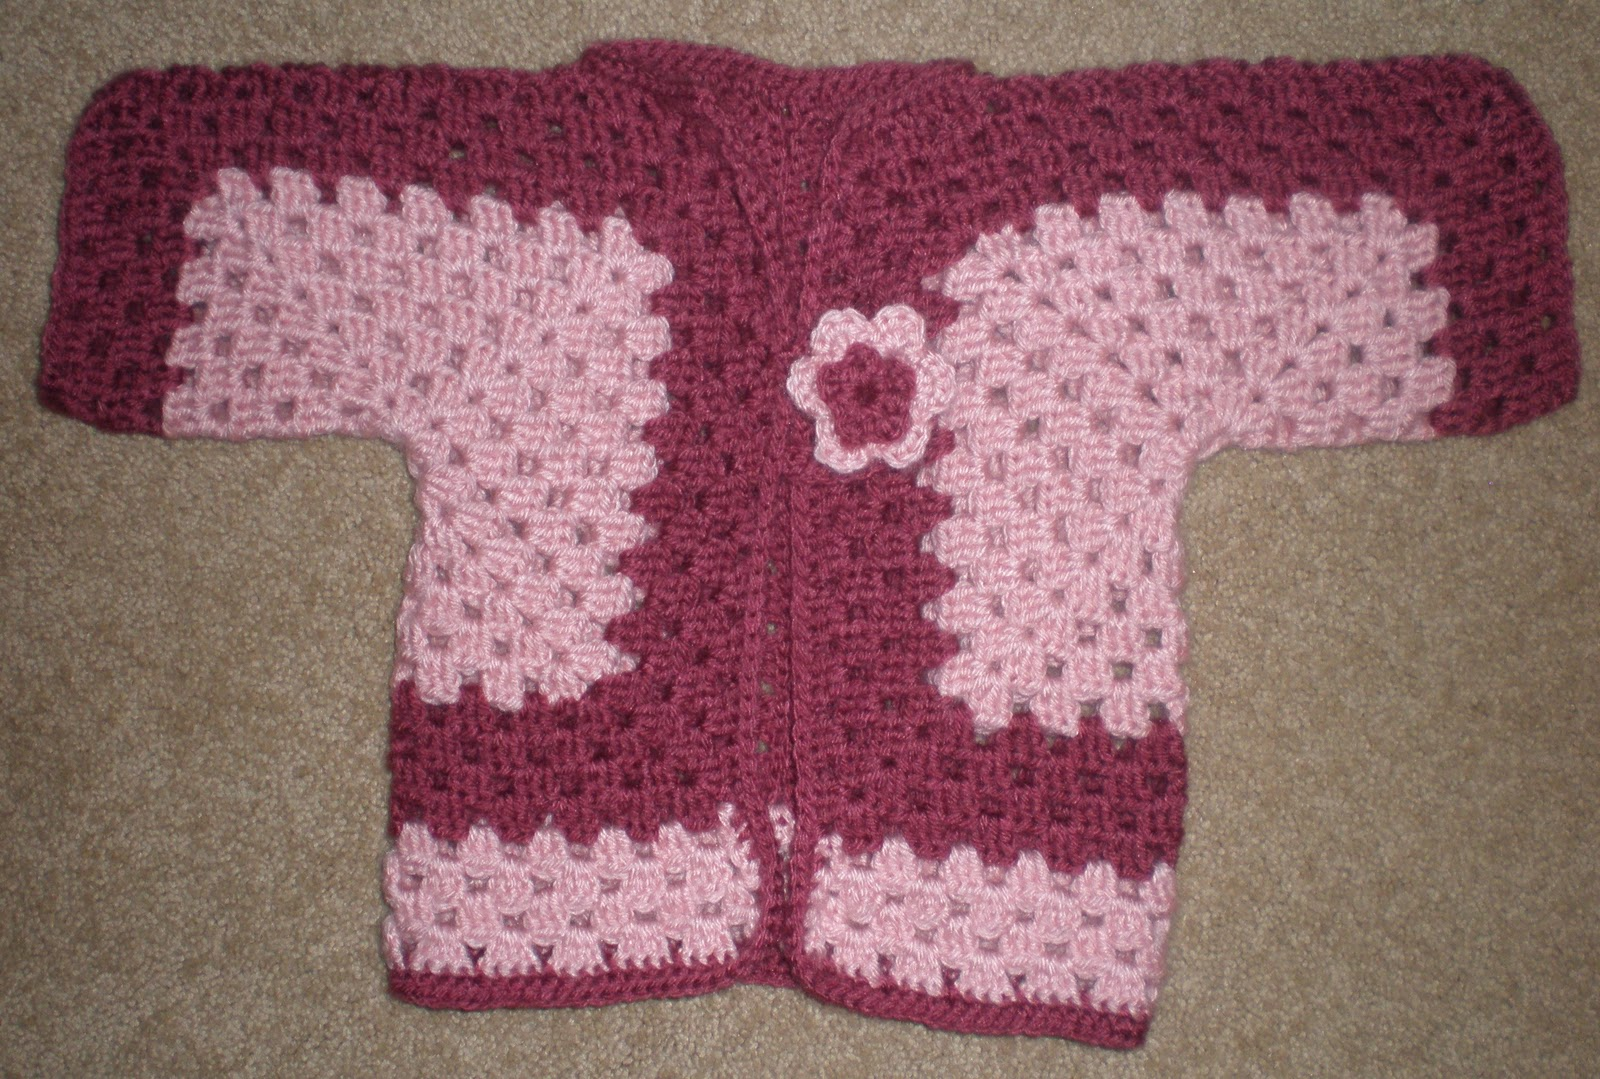 Amys Crochet: Baby Sweater (3-6 month old)